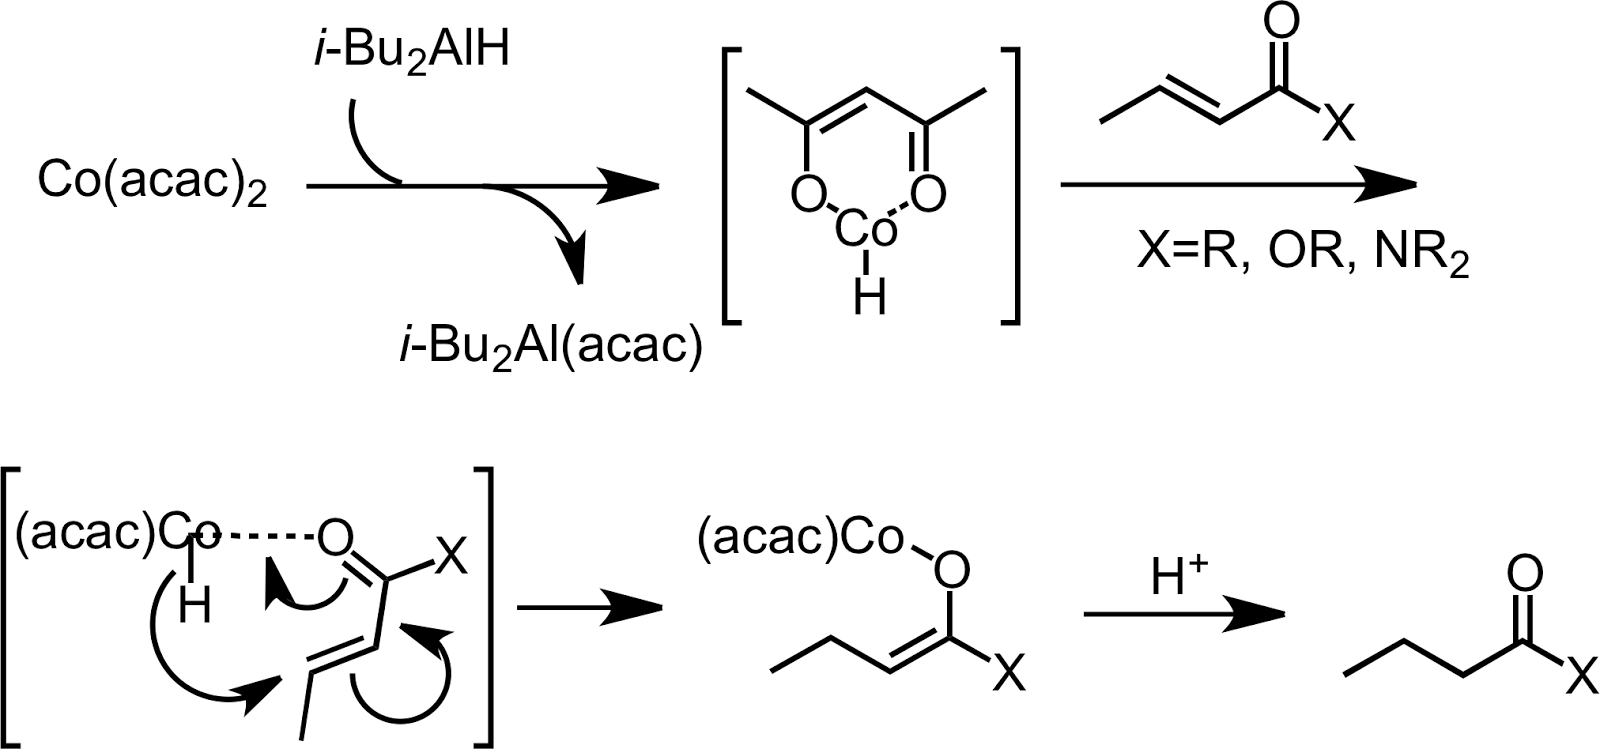 synthesis of co acac 3 Methoxybenzoyl hydrazone (h2smbhon) with coci26hp, co(no)26hp, co( ch3coo)24hp and co(acac)3 under varied reaction conditions.